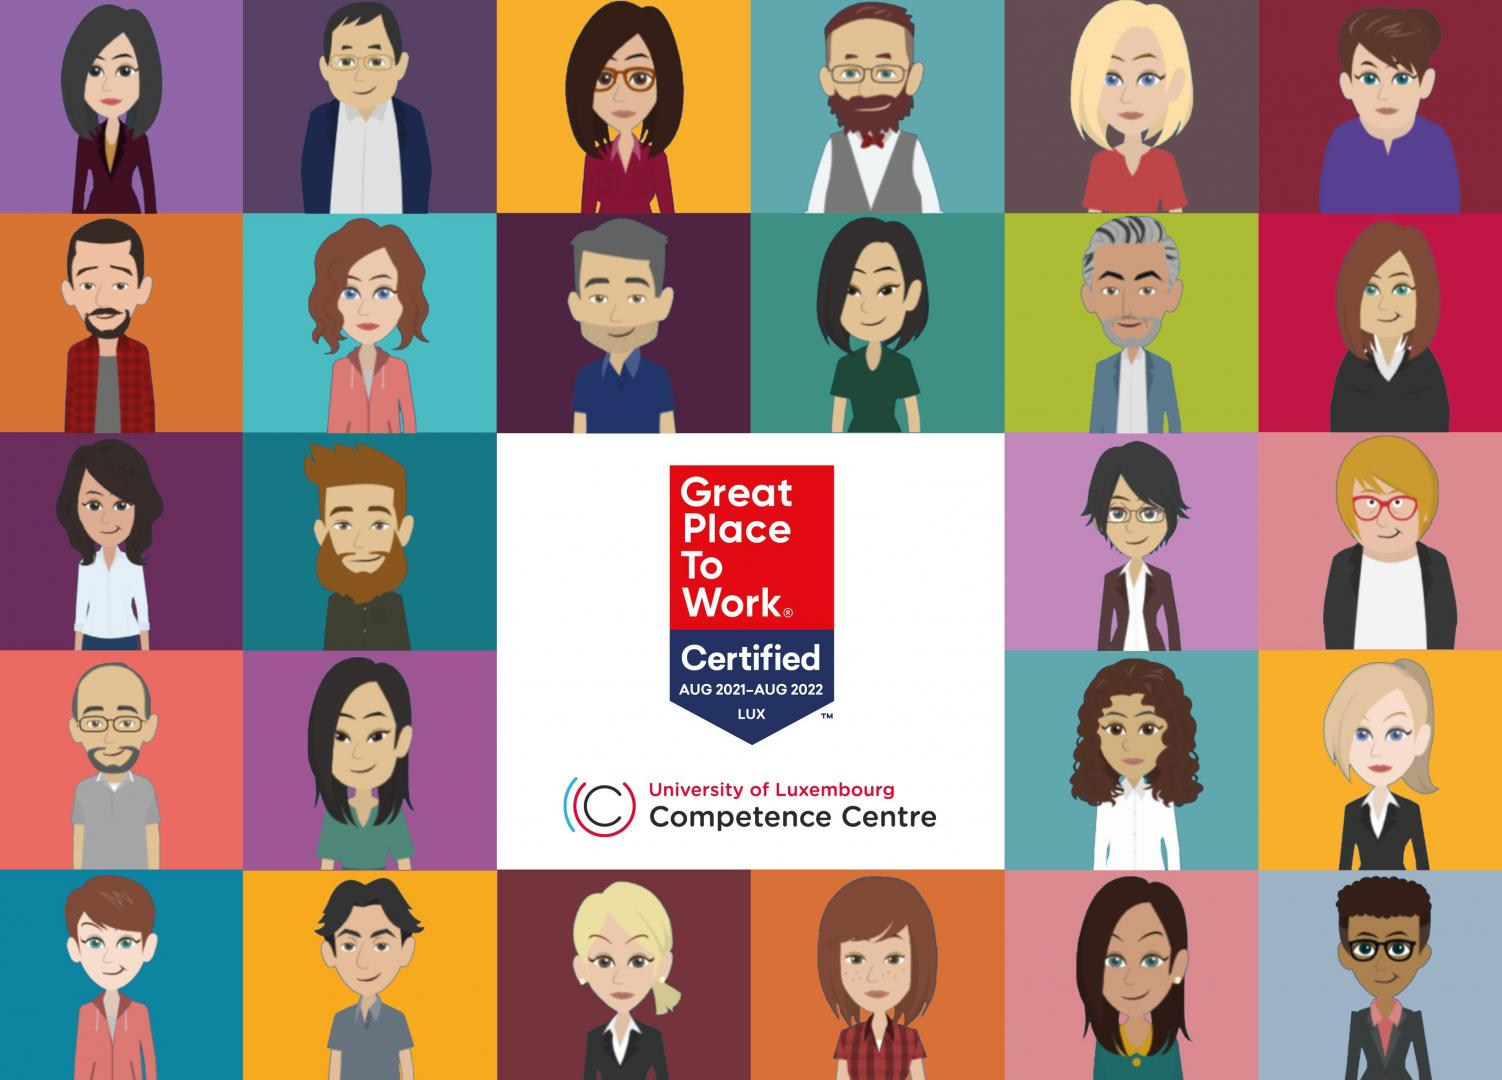 University of Luxembourg Competence Centre certifié Great Place to Work Luxembourg®